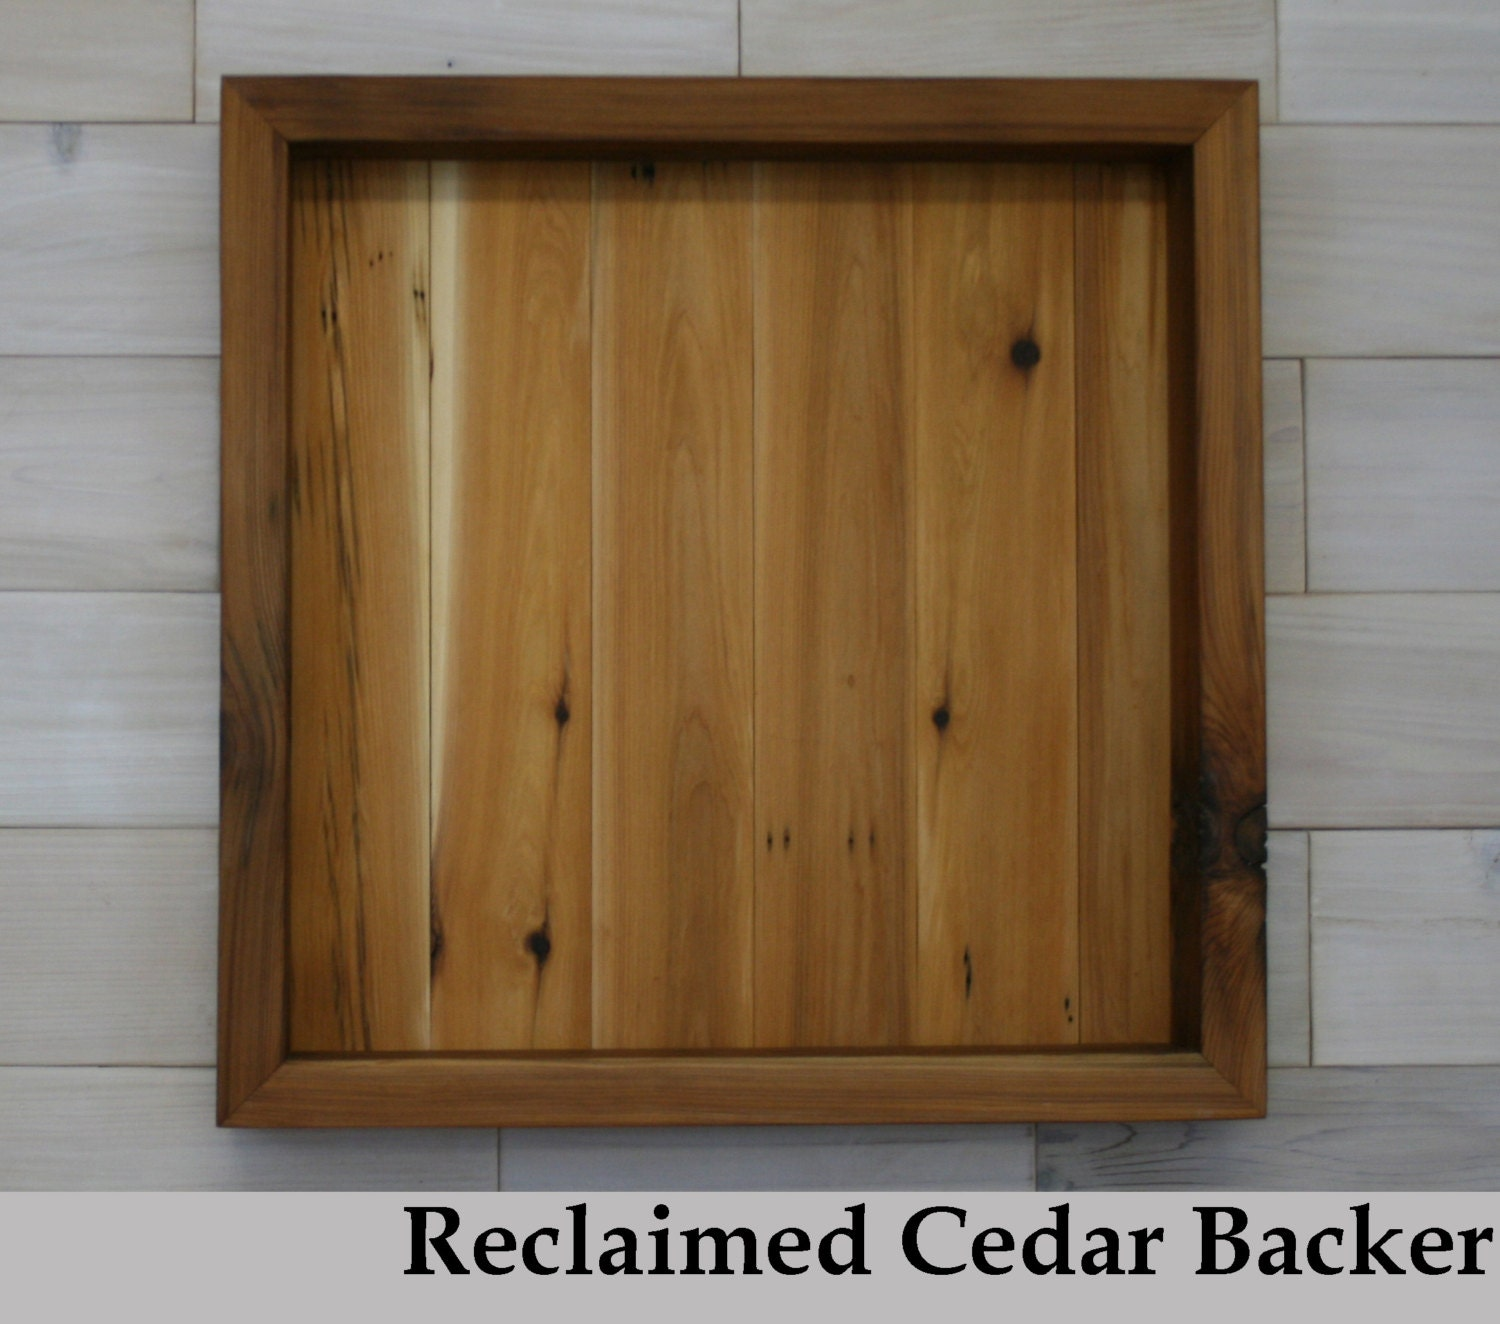 Reclaimed Cedar Shadow Box 20 X 20 X 3 With Clear Acrylic